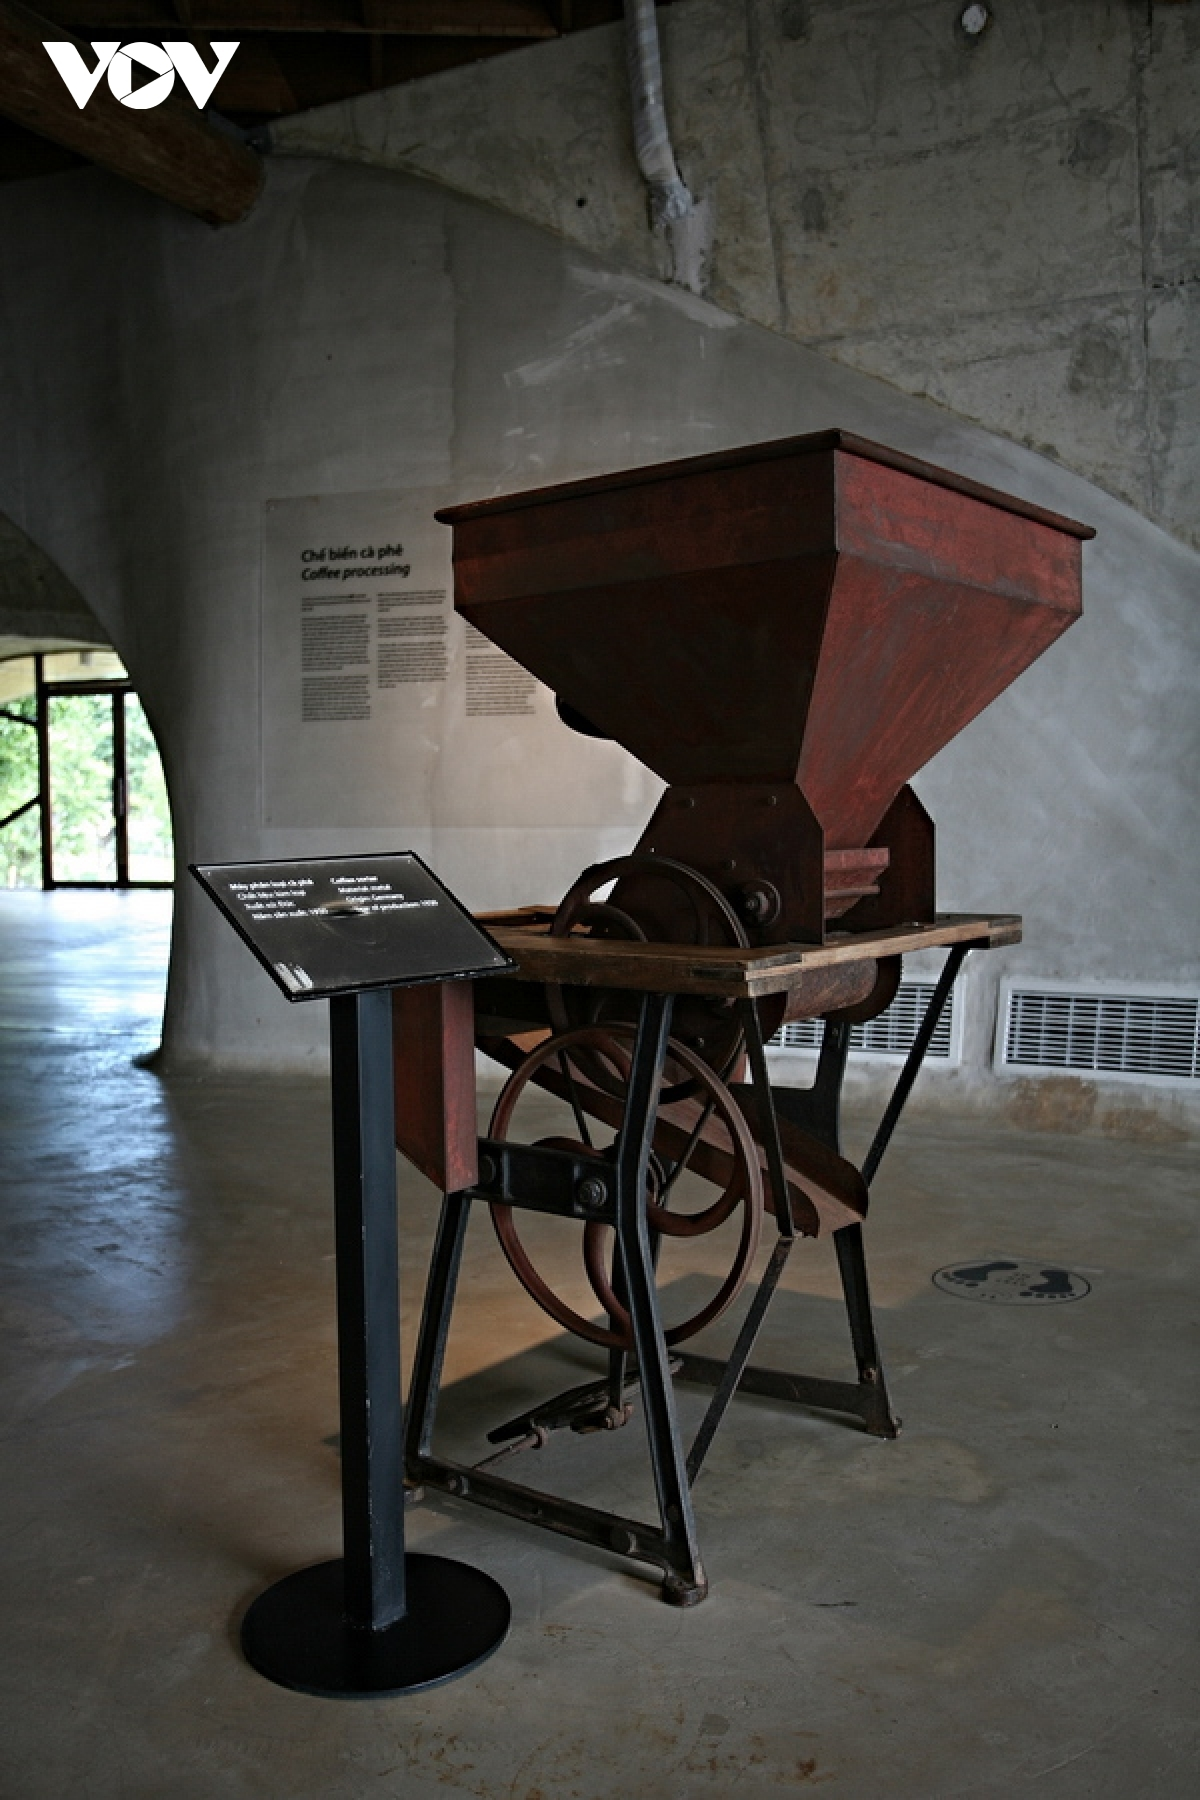 A coffee sorting machine manufactured in Germany in 1930